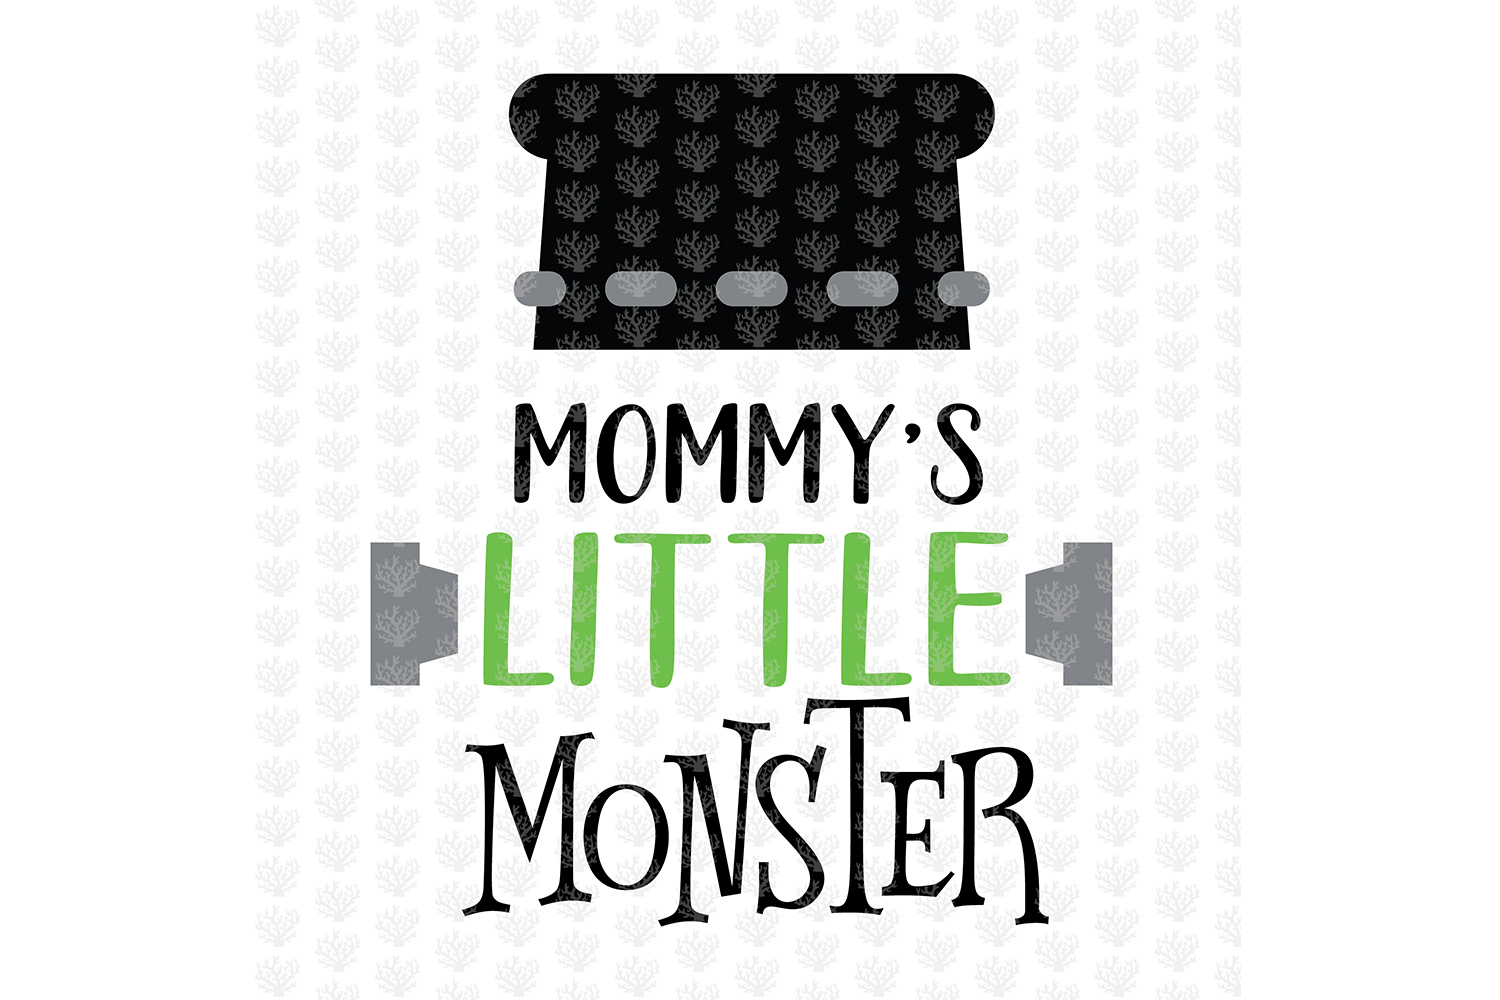 Mommy Little Monster - Halloween SVG EPS DXF PNG Cut File example image 3